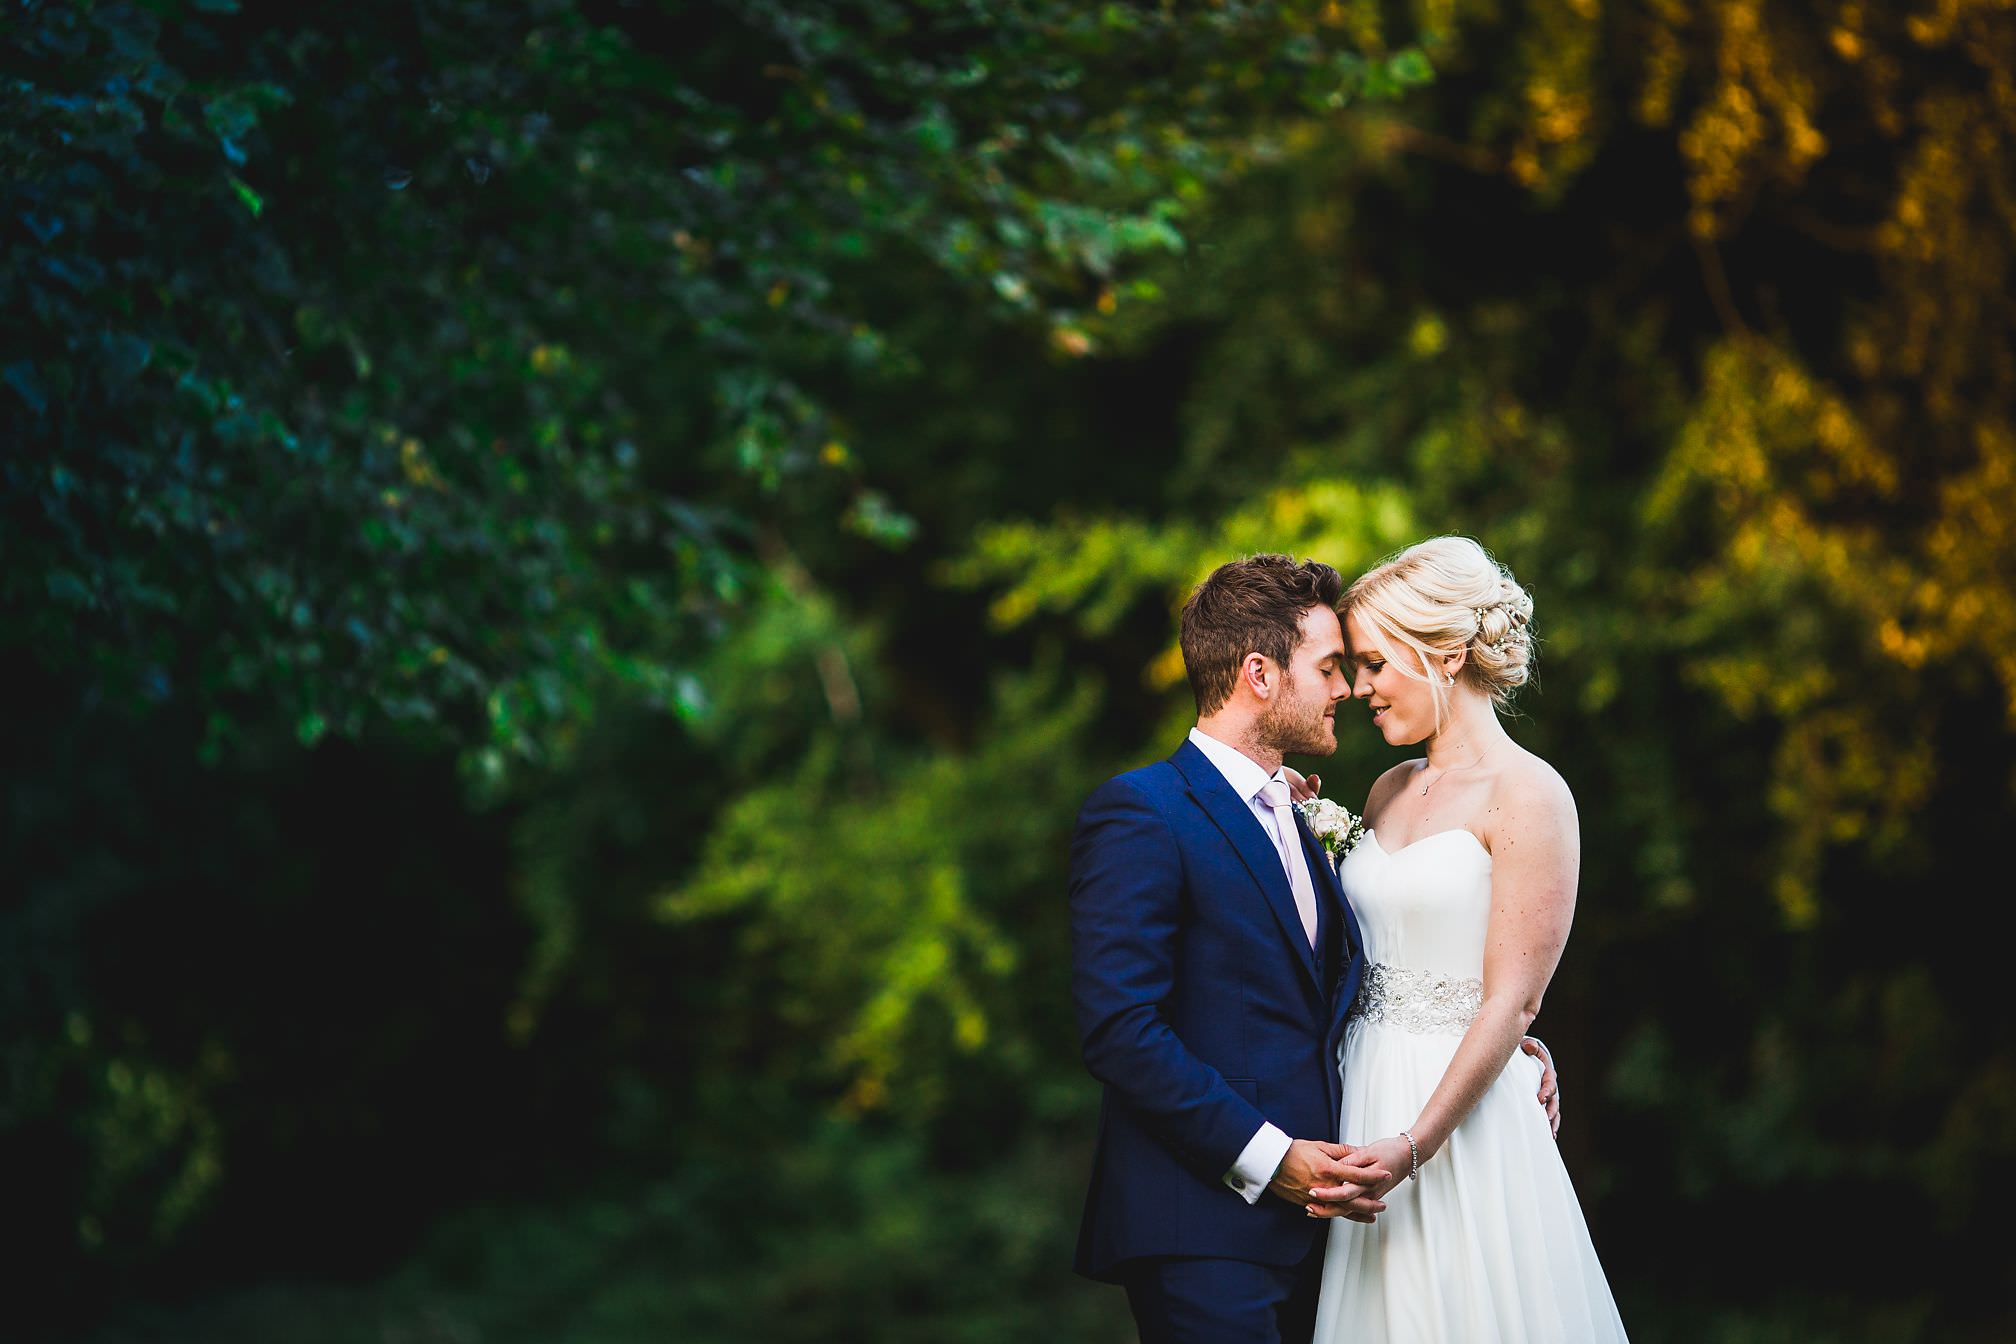 Mar hall wedding photography Mottram Hall Wedding VenueBR Cheshire, Cheshire